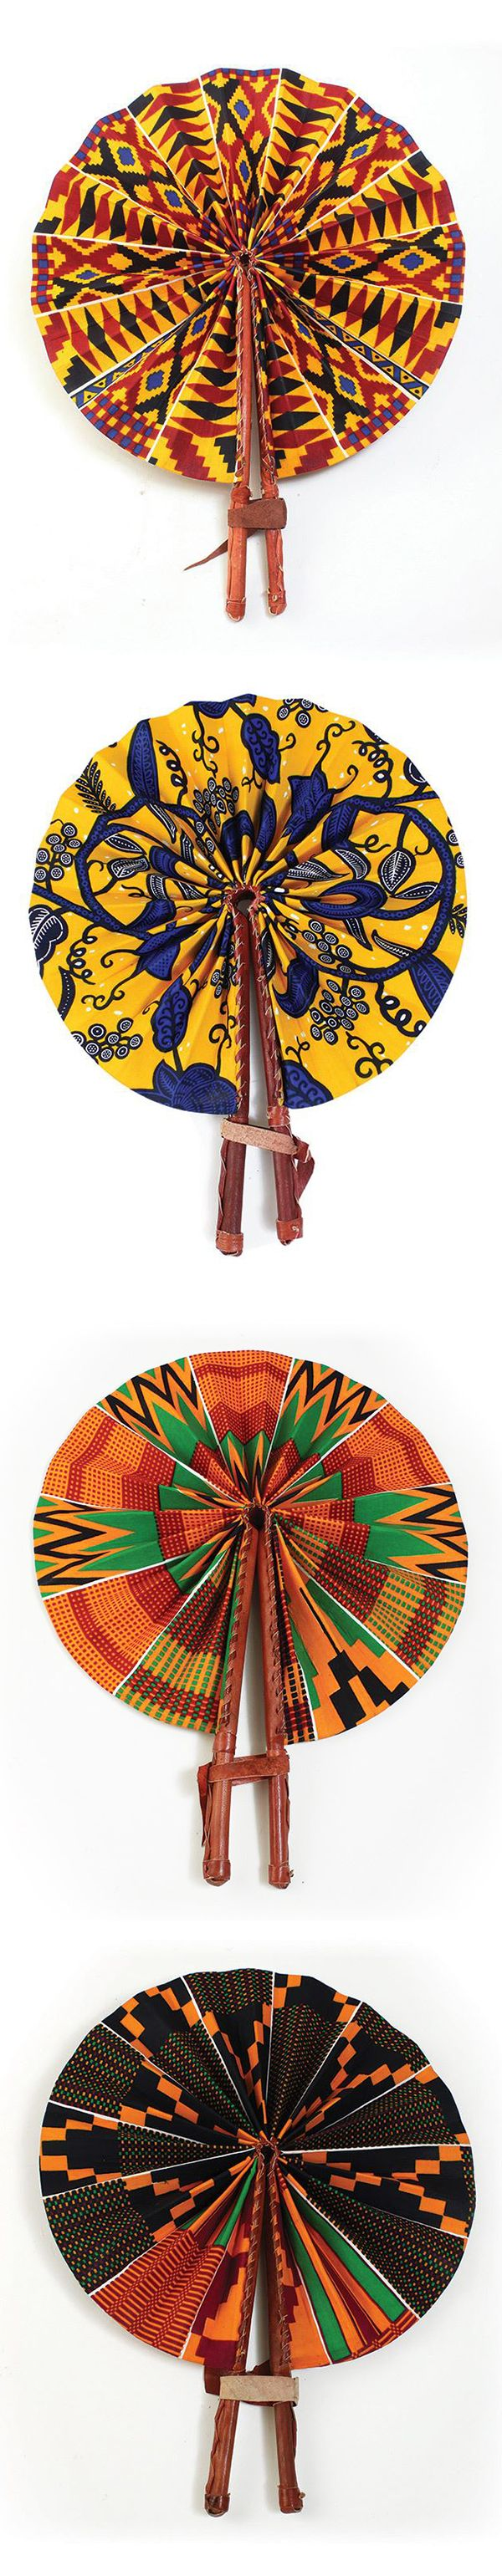 Handmade African leather fans in traditional African patterns - Kente cloth pattern and other traditional African prints on handmade fans made in Kenya.  Beautiful handmade fans in bright African colors.  These African fans are a perfect gift for friends and family, or giving as gifts for a bridal shower.  Celebrate Black History Month with these beautiful traditional African fans.  #african #africa #pattern #fans #gift #kente #pattern #surfacedesign #colorful #blackhistorymonth…